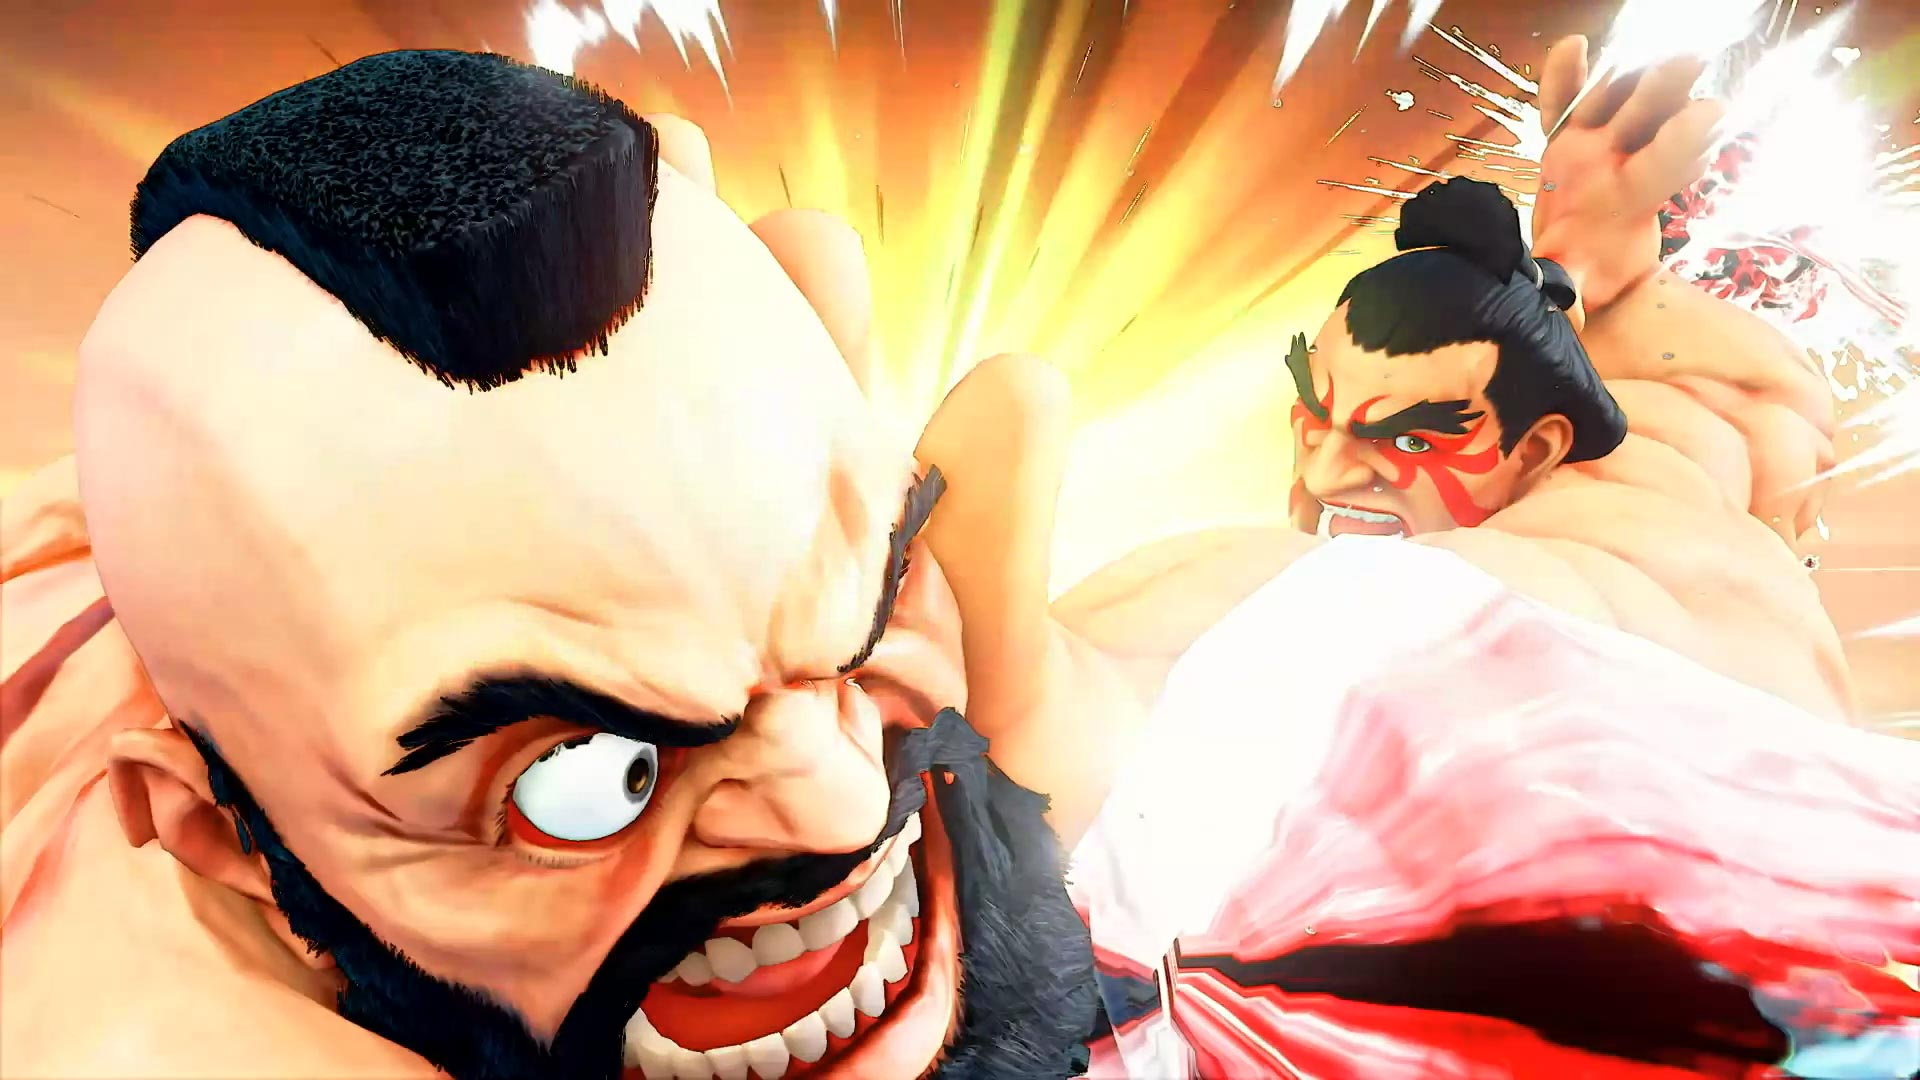 Street Fighter 5 leaked gallery of E. Honda, Lucia and Poison 26 out of 35 image gallery